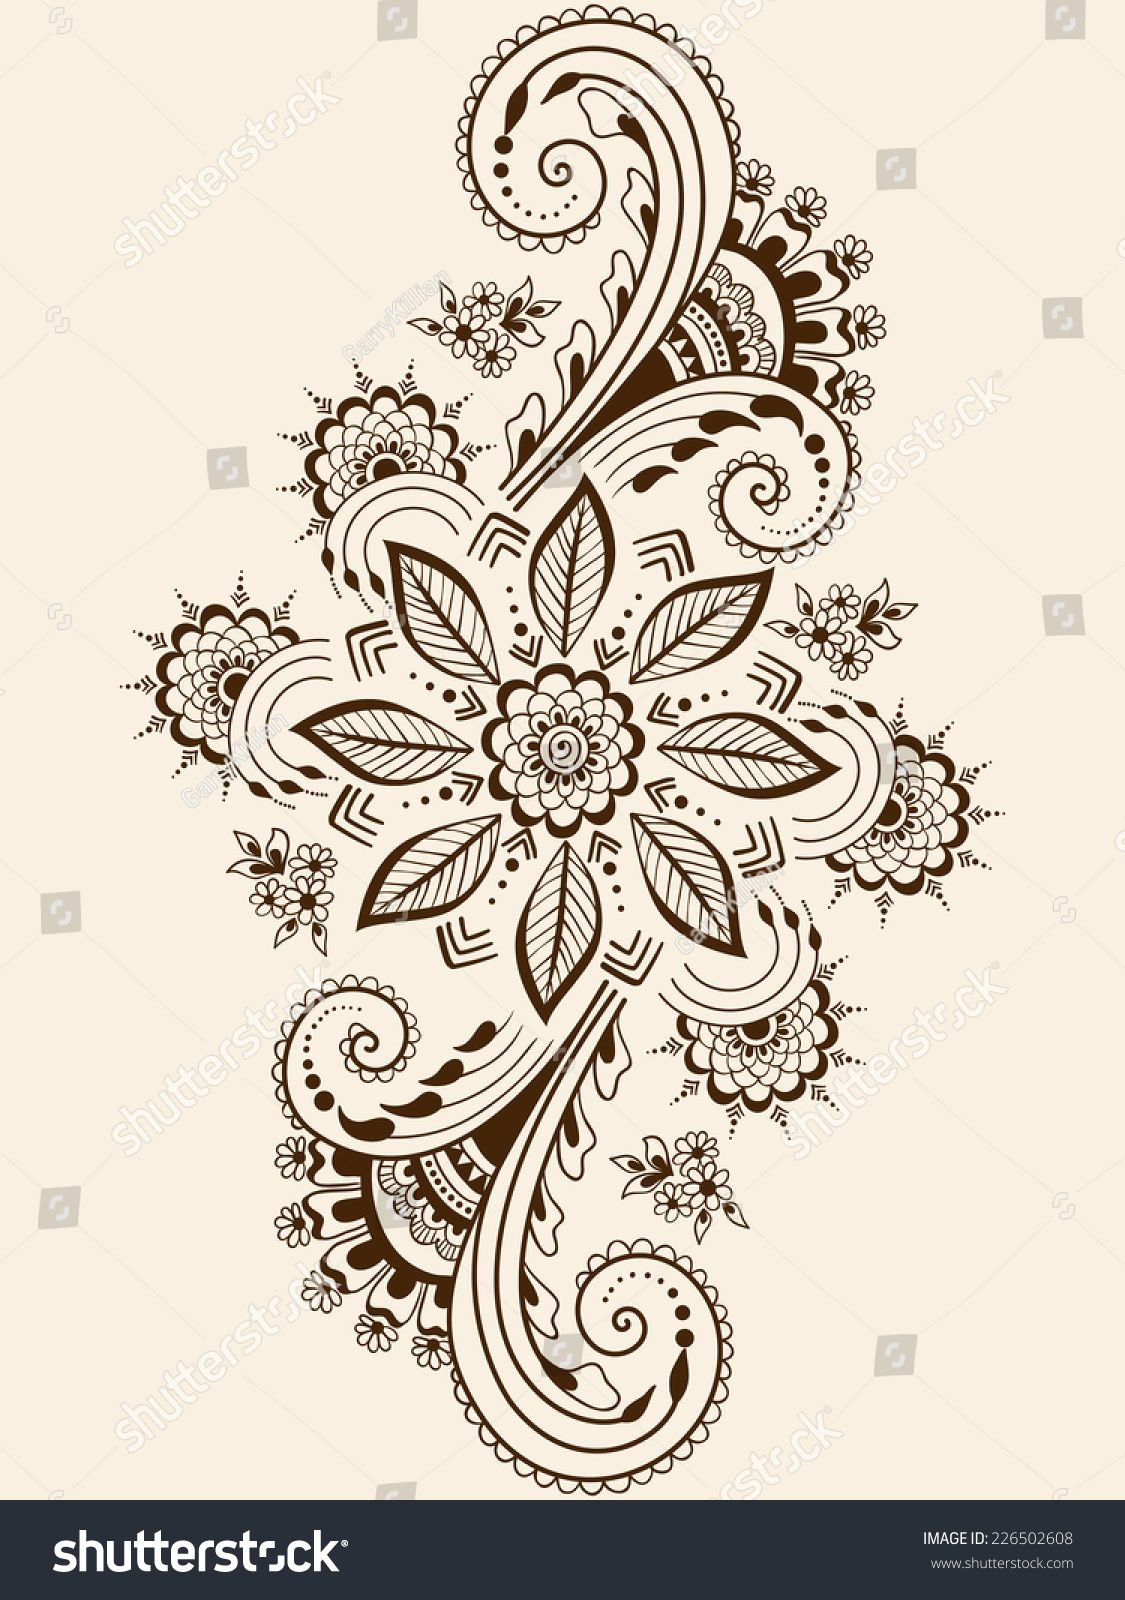 Arte Floral Vetor Vector Abstract Floral Elements In Indian Mehndi Style Abstract